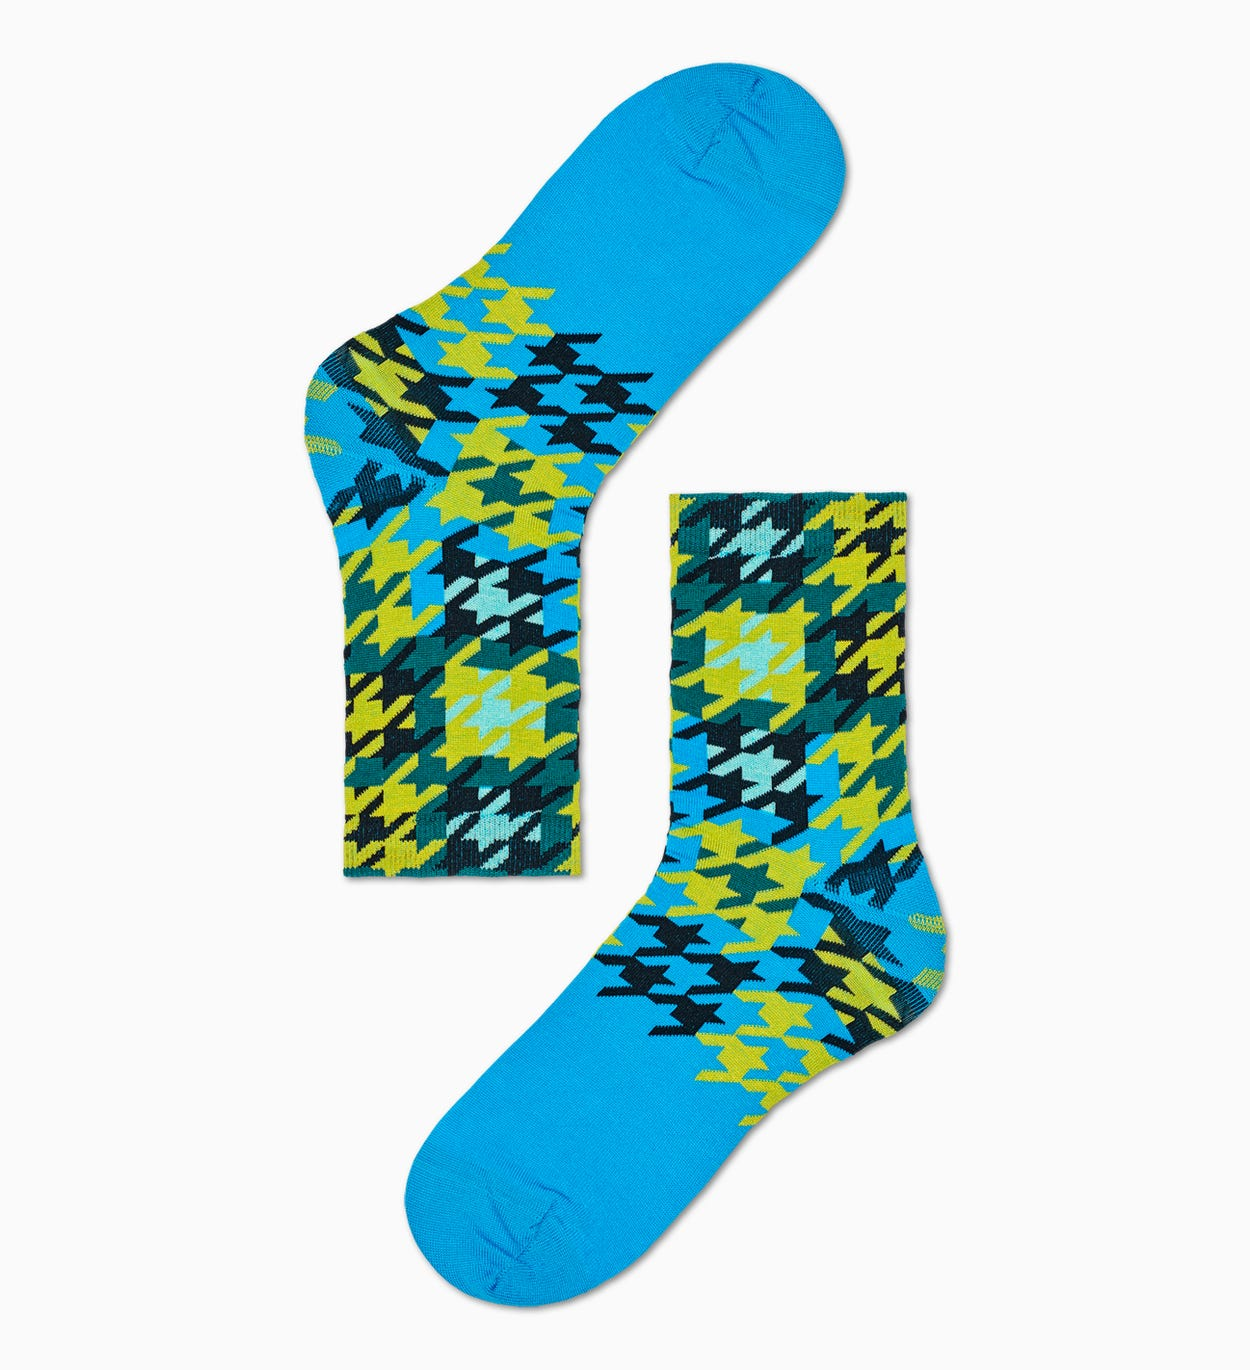 Blaue niedrige Socken: Marcia | Hysteria by Happy Socks